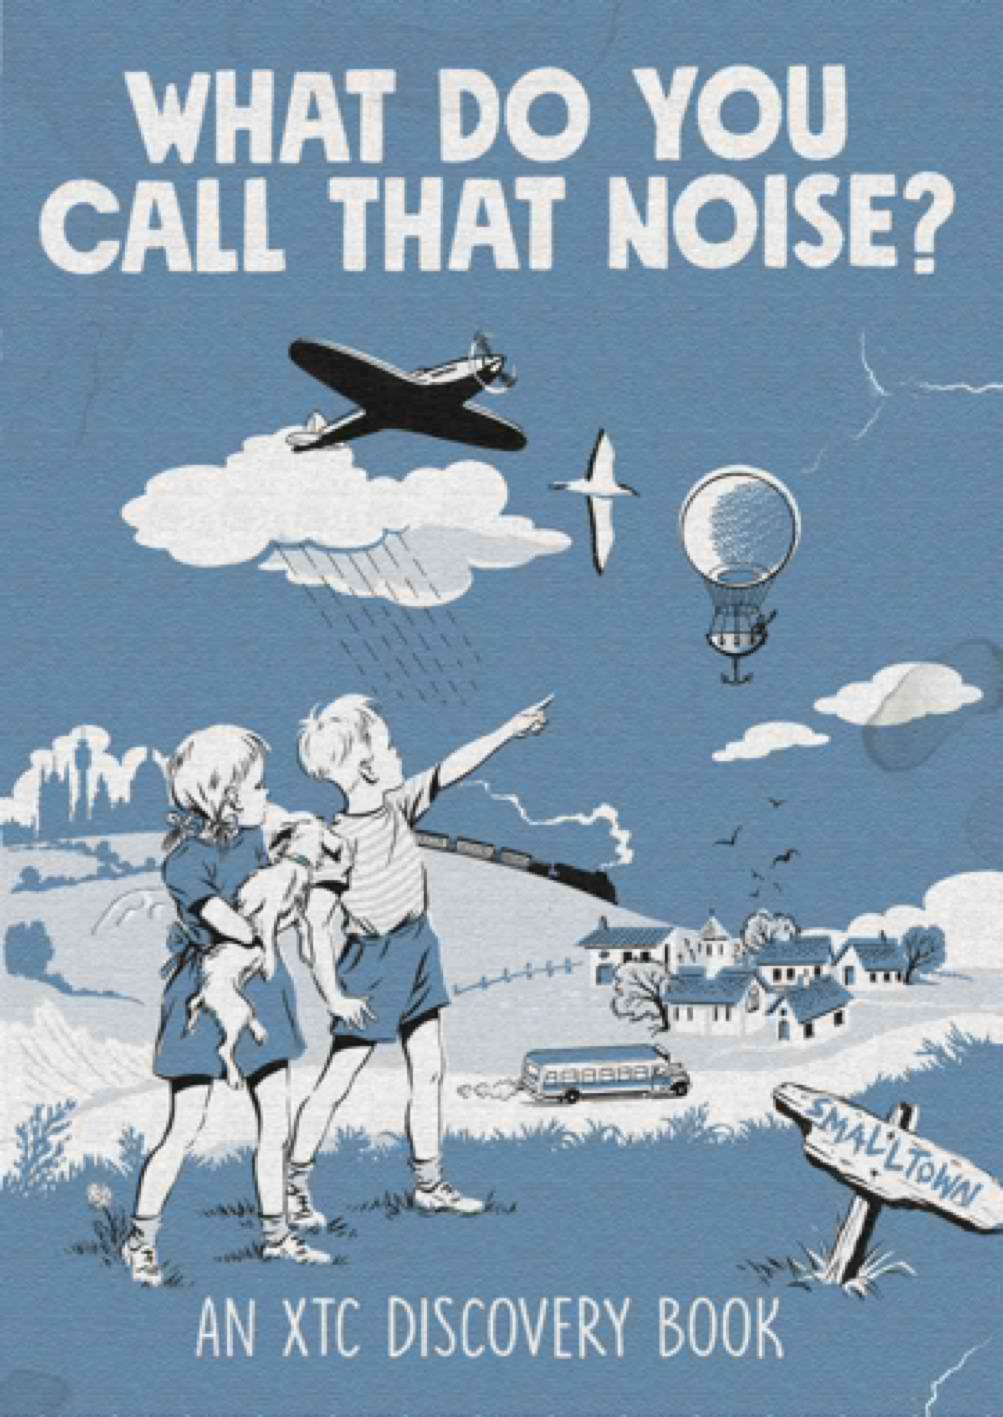 What Do You Call That Noise? An XTC Discovery Book